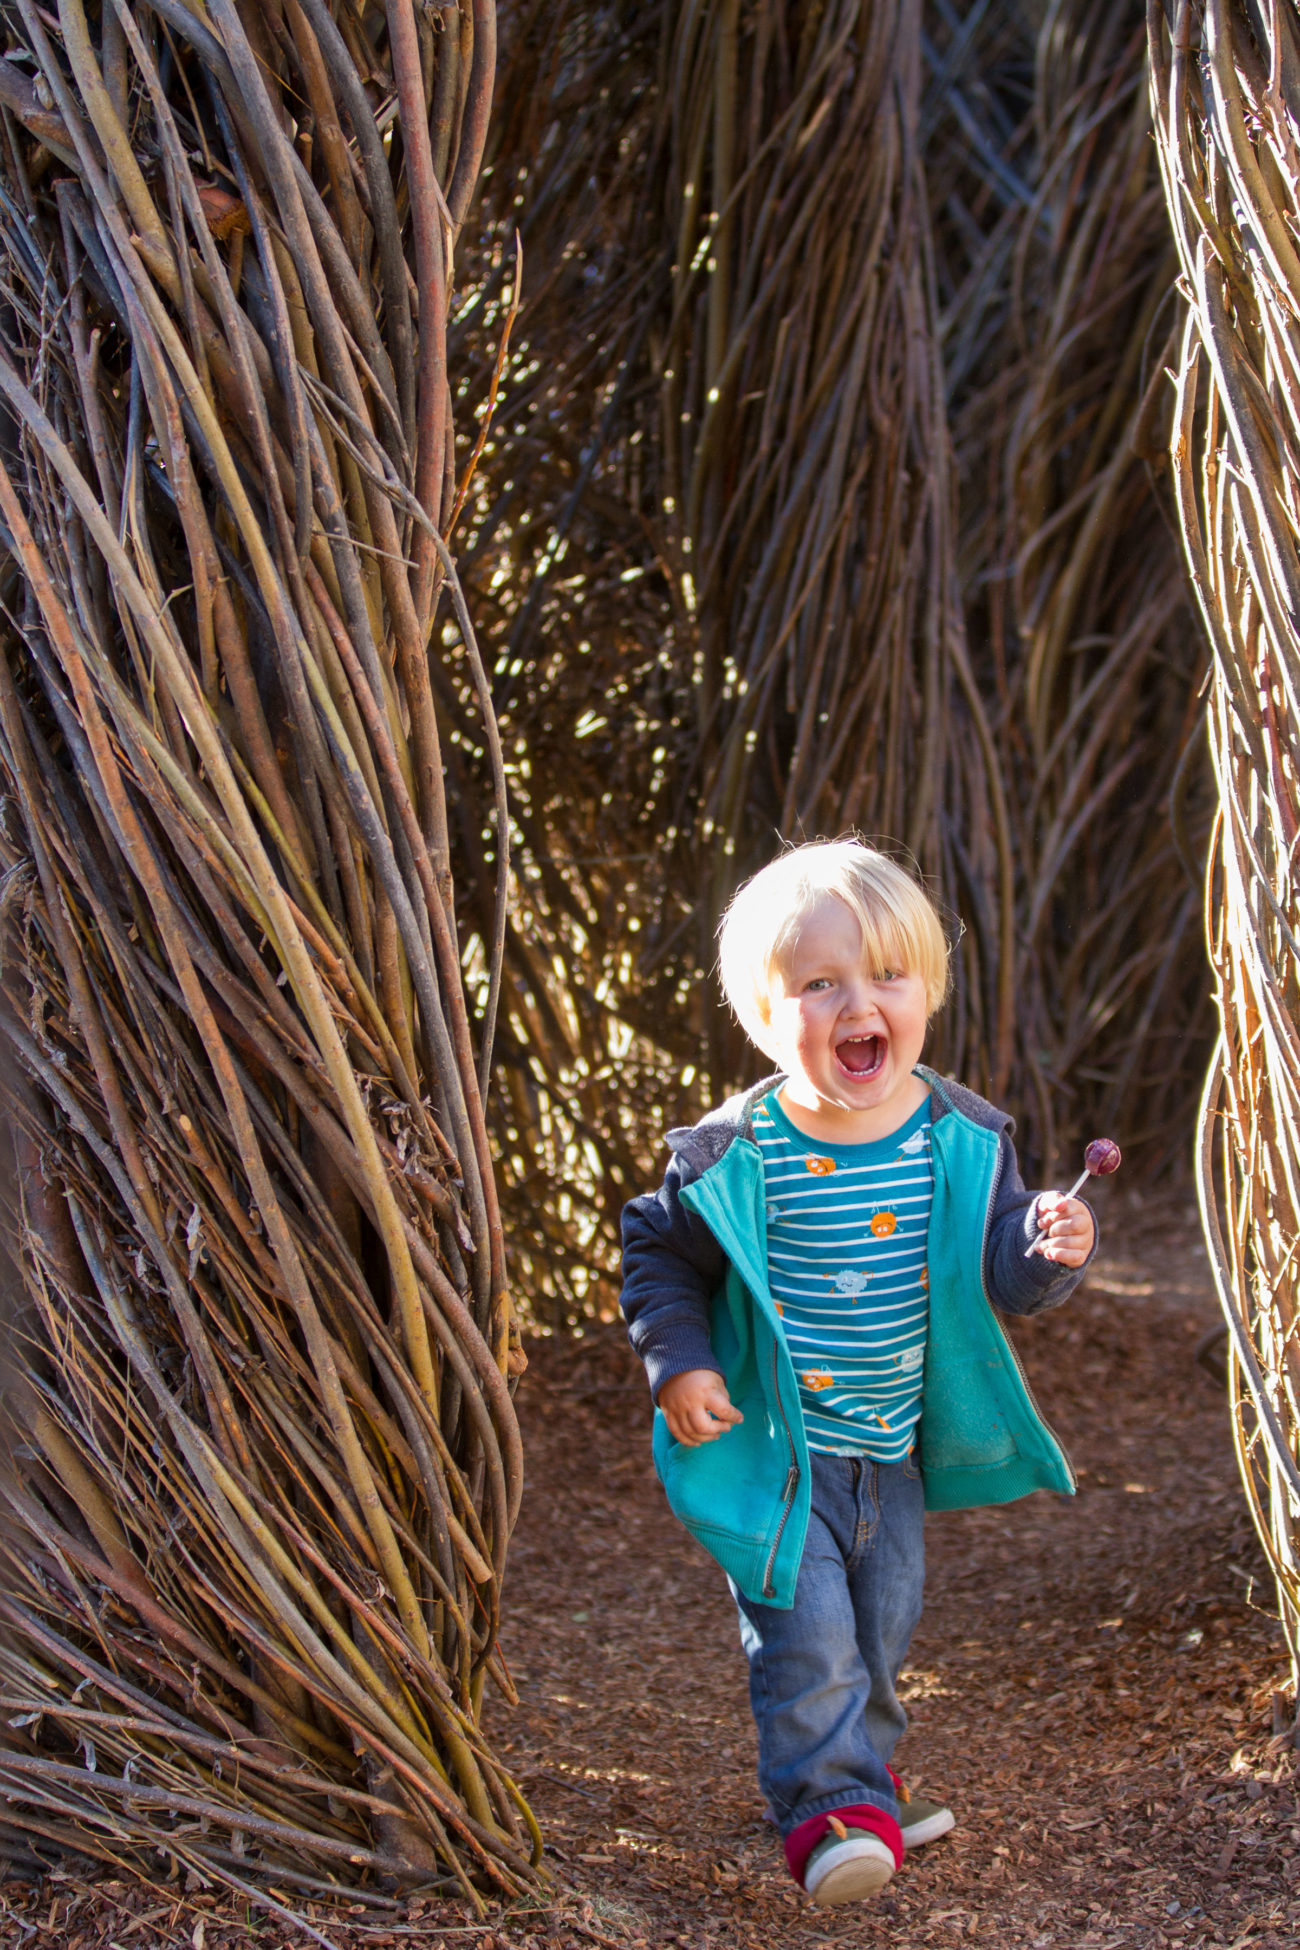 A 2 year-old boy runs through the interactive art installation with a smile on his face.